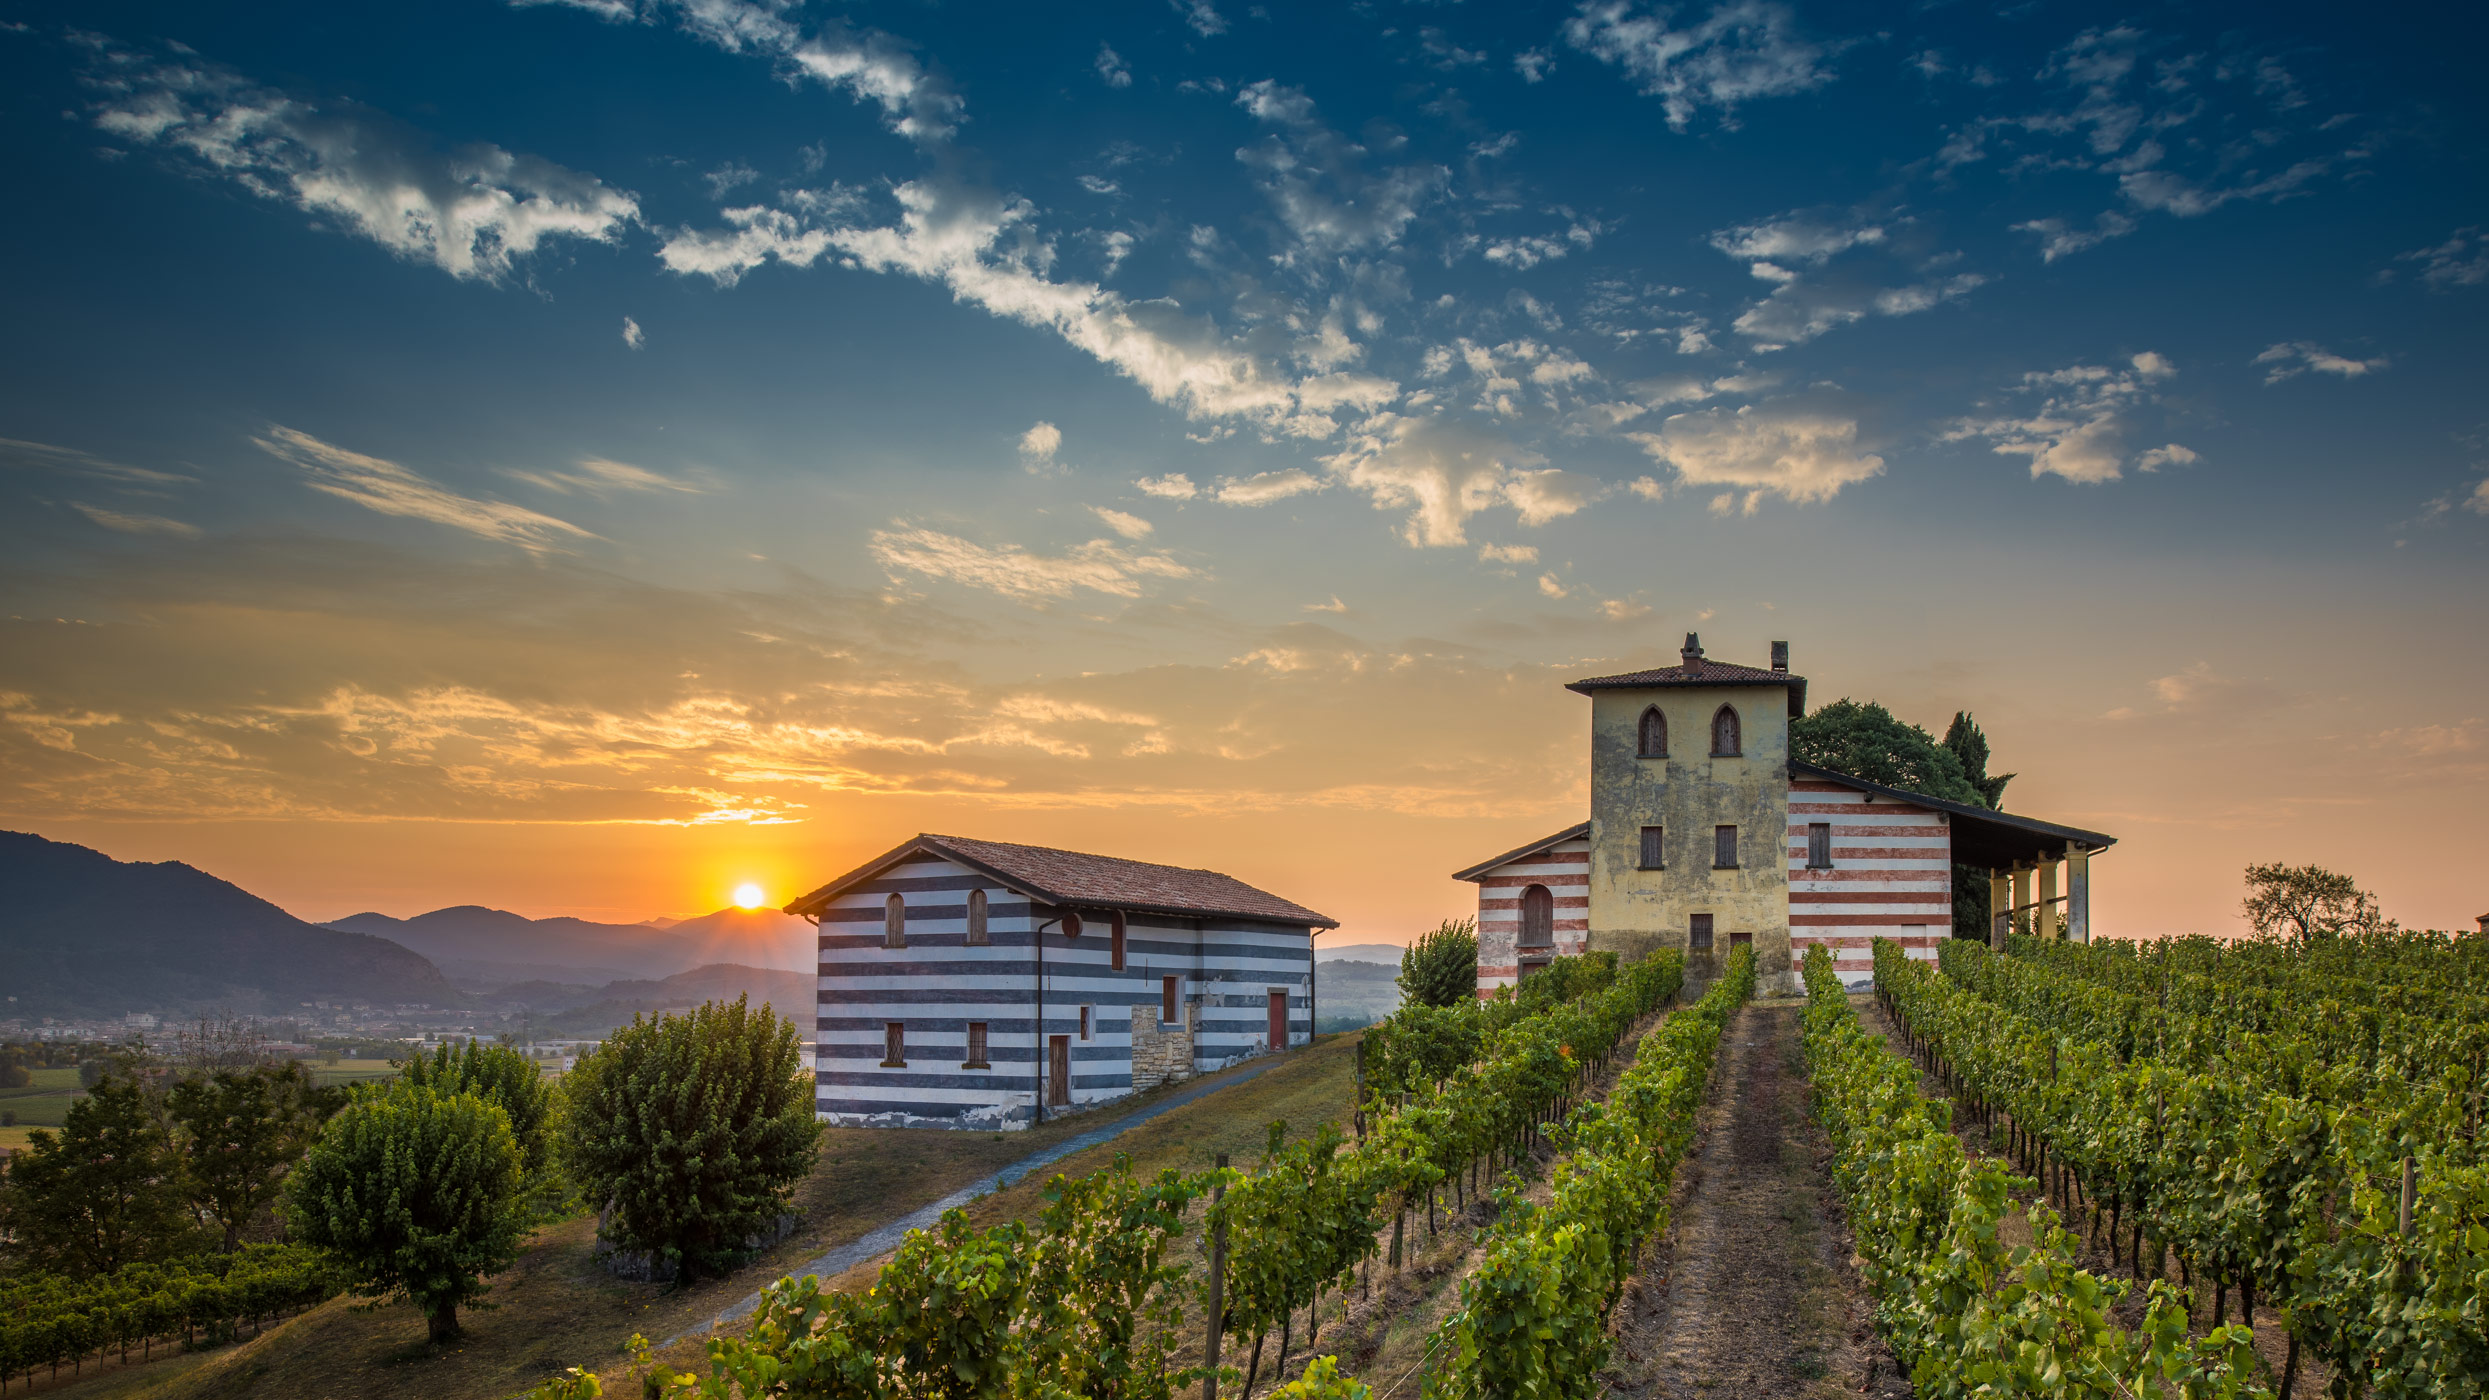 Berlucchi wineries, Franciacorta, Italy.